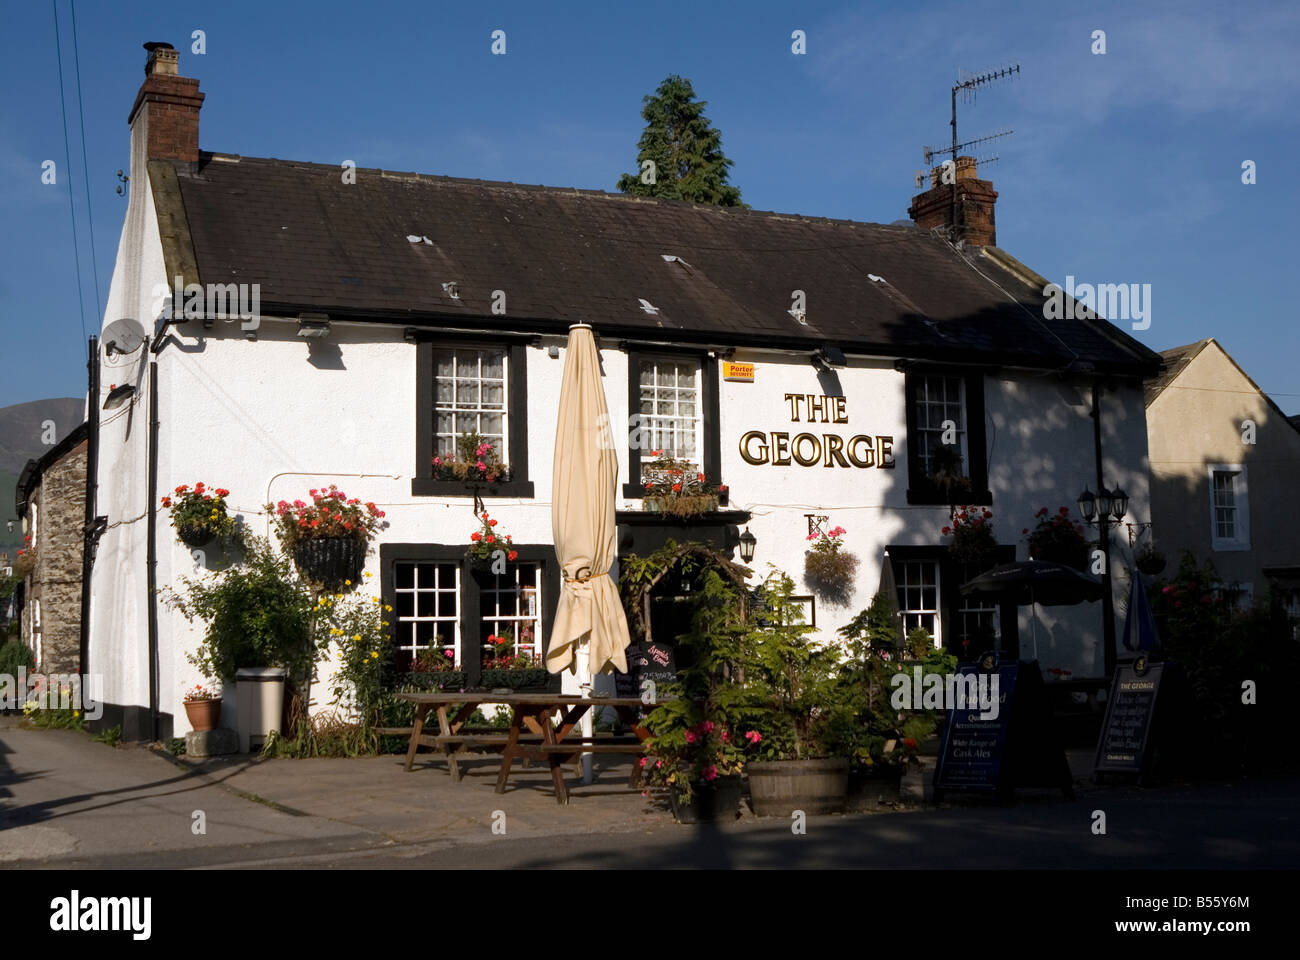 The George Public house in Castleton in the Peak District National Park Derbyshire UK England GB Great Britain - Stock Image